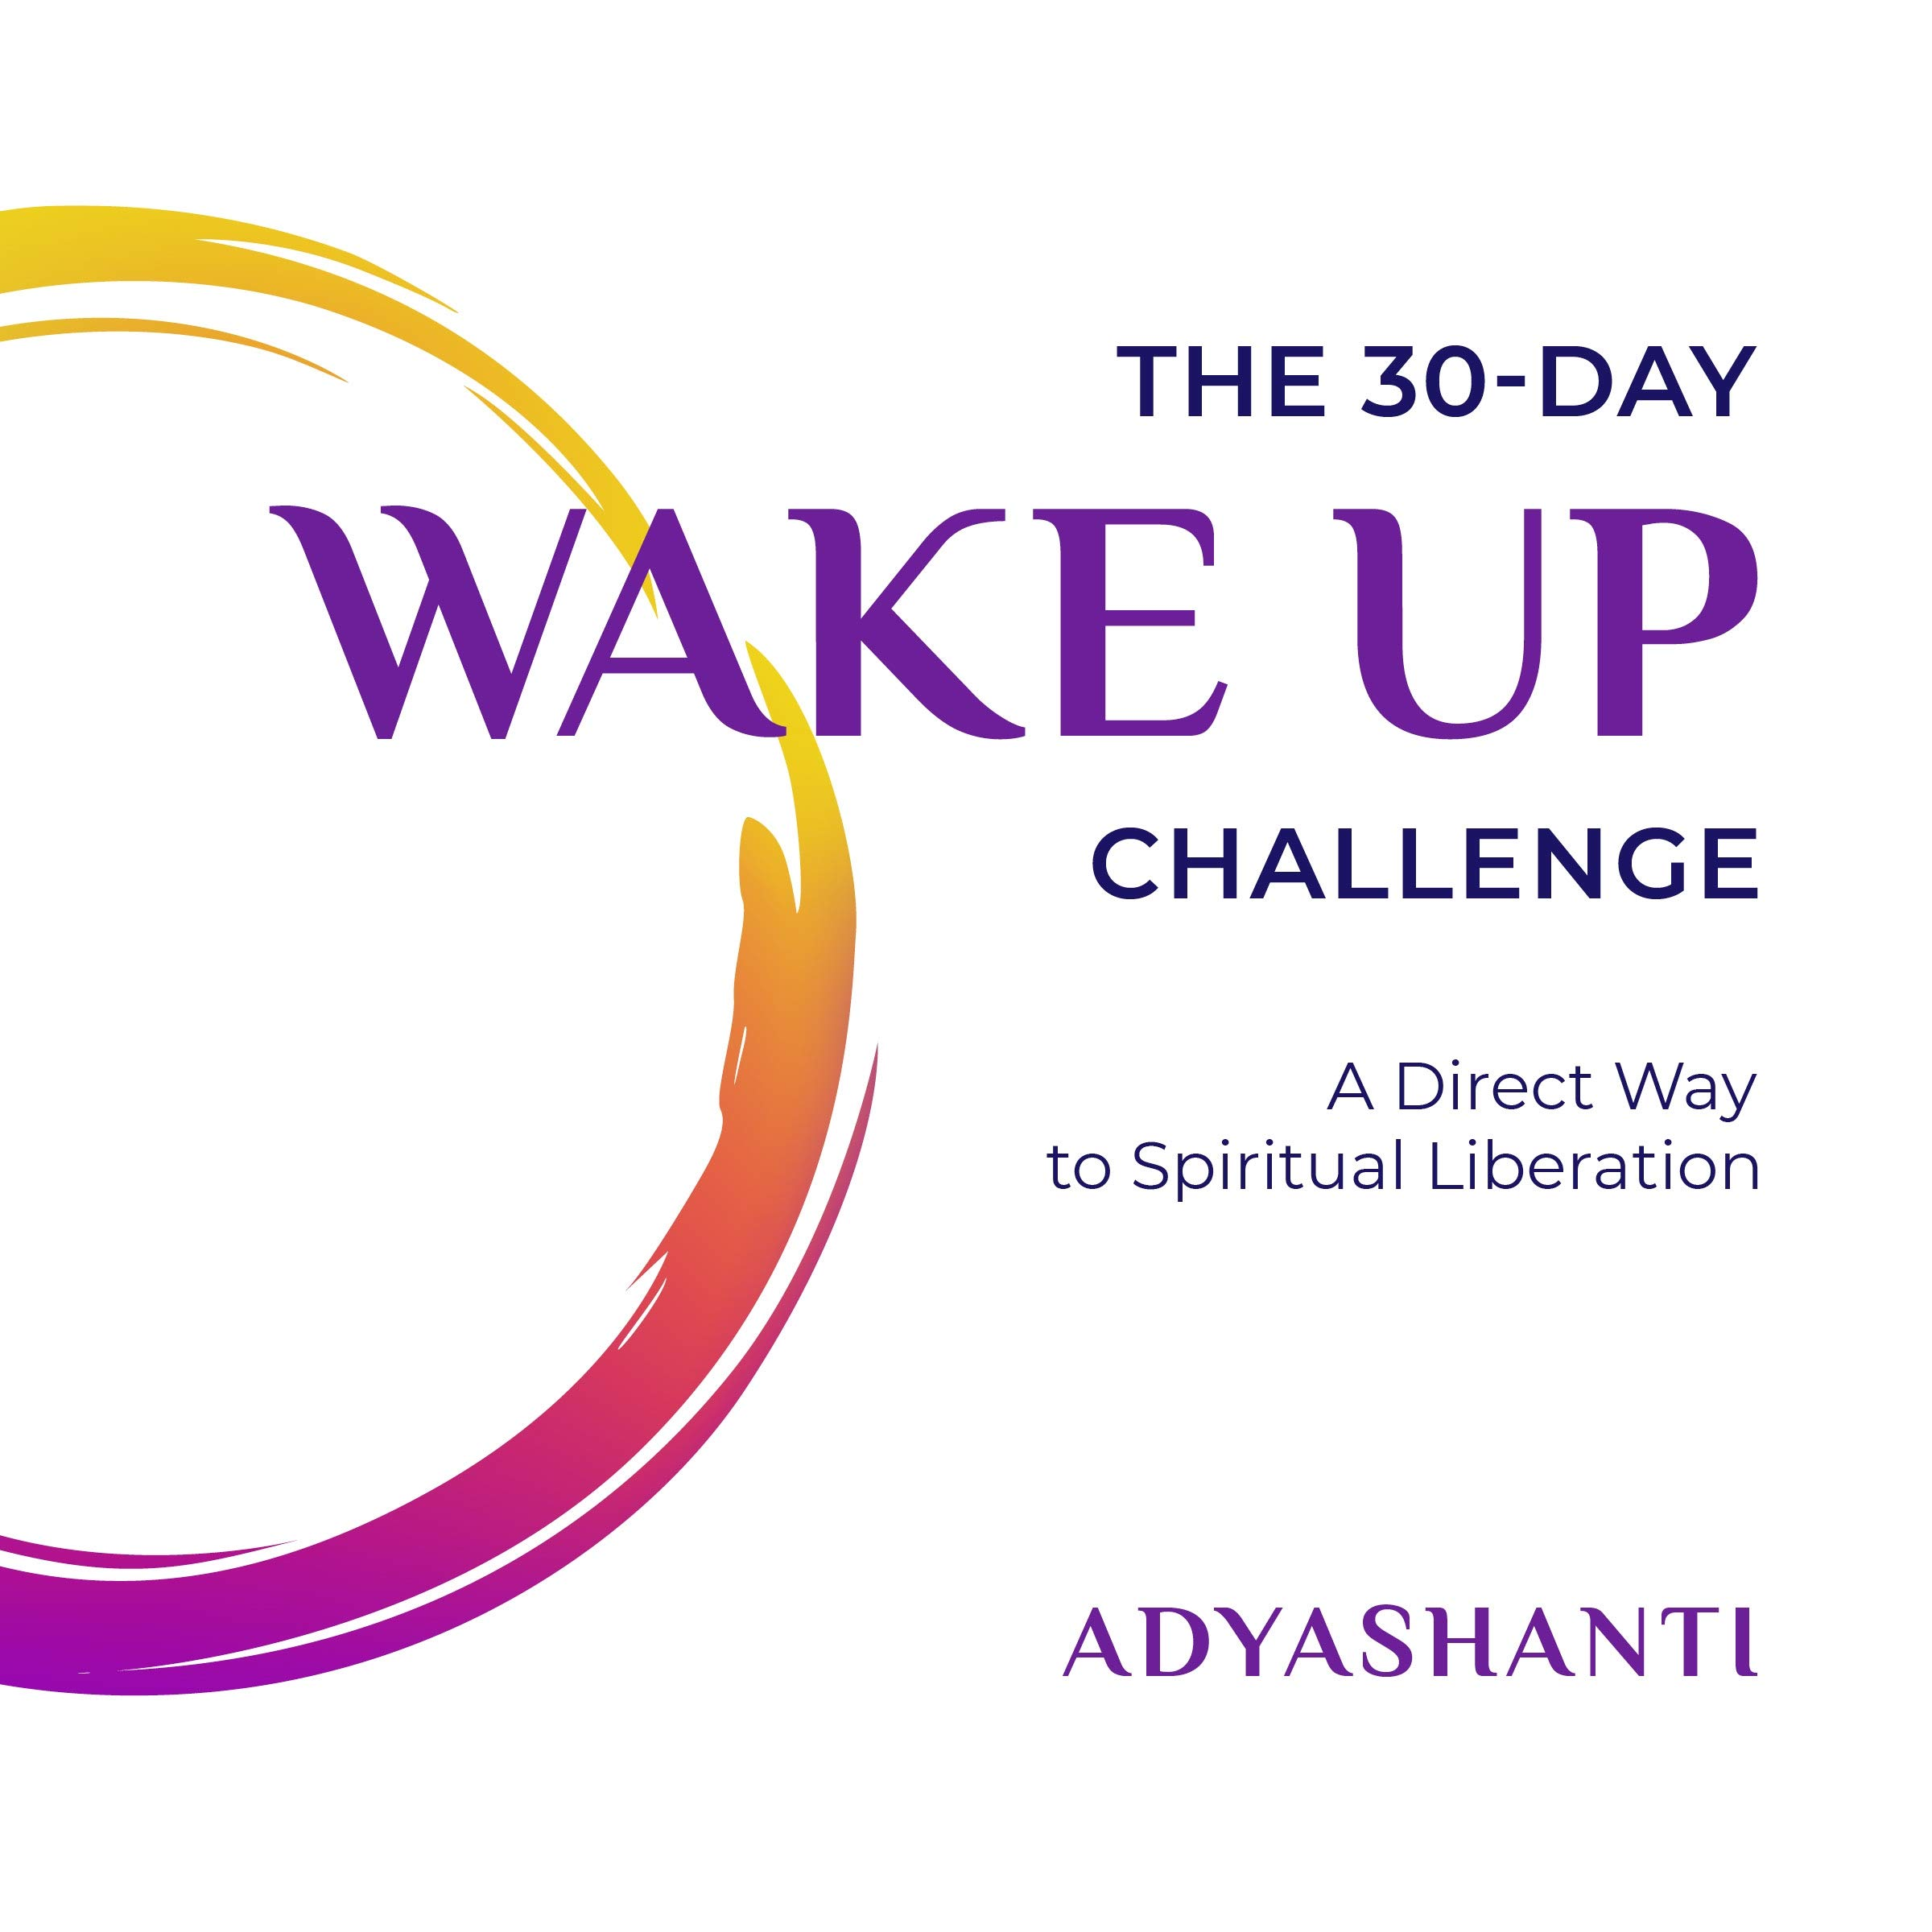 The 30-Day Wake Up Challenge: A Direct Way to Spiritual Liberation by UNKNO